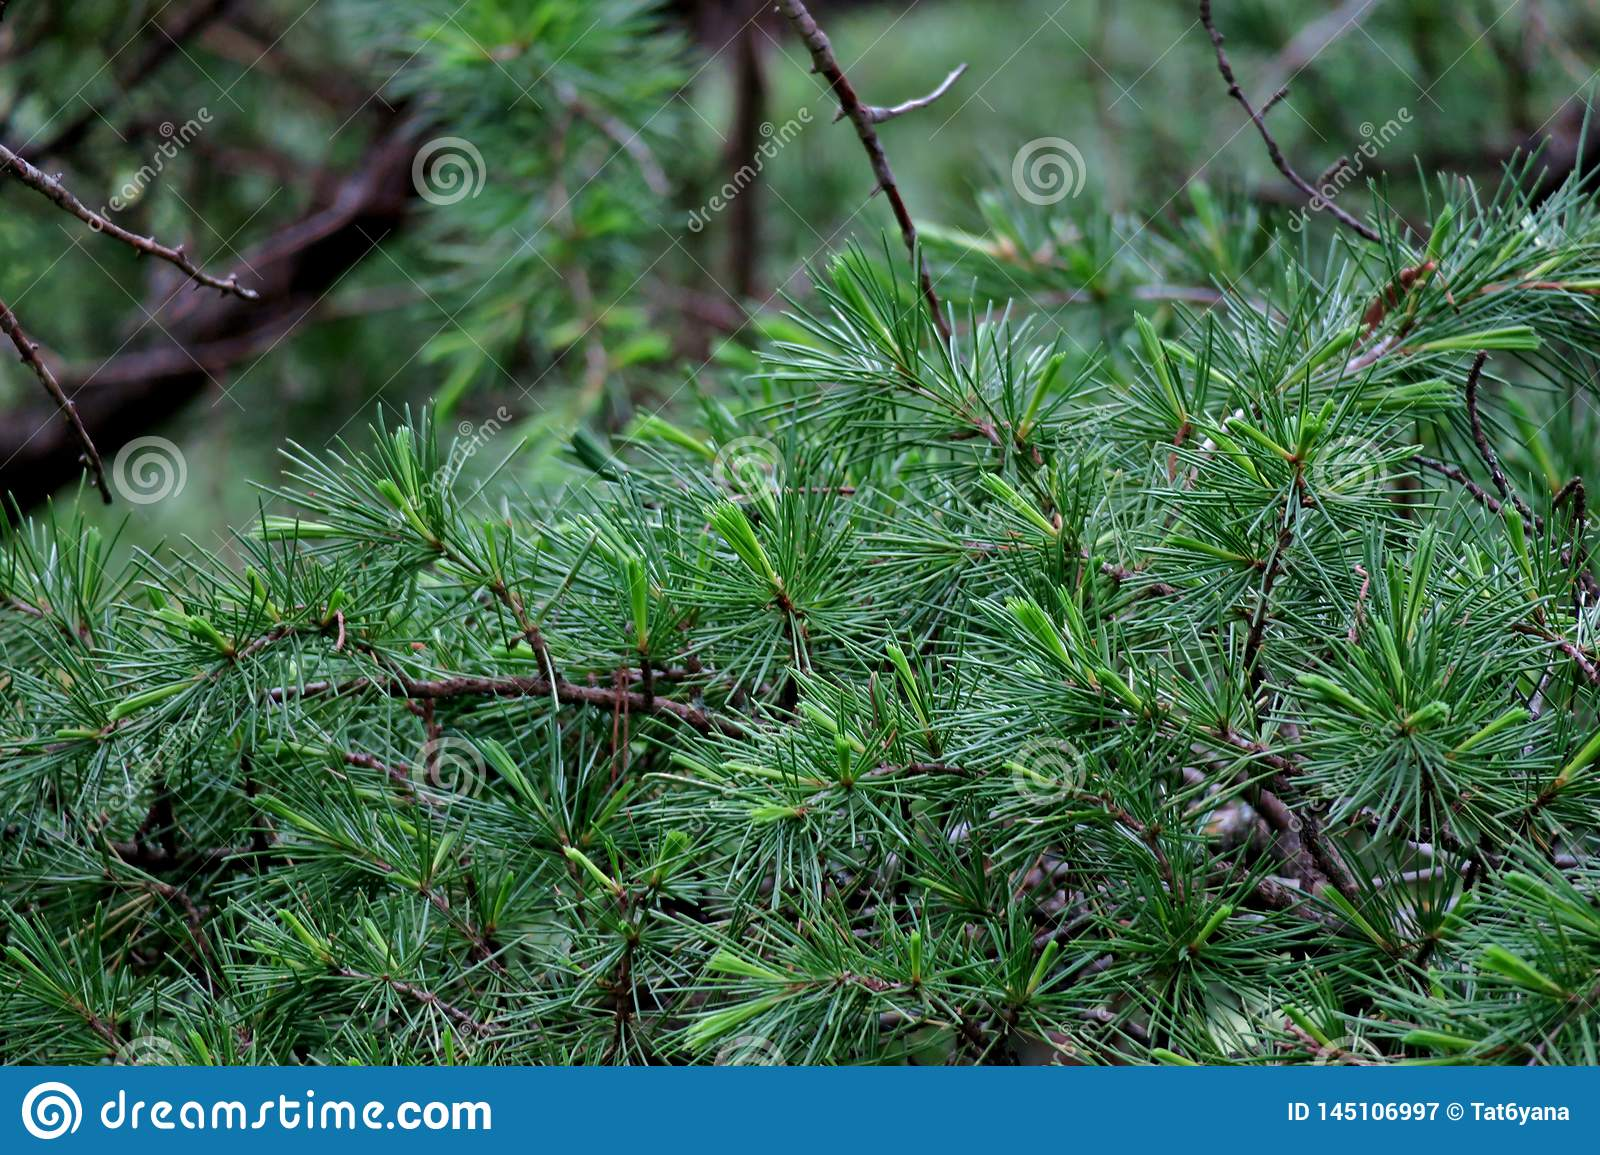 Beautiful green background from the branches of pine needles close-up